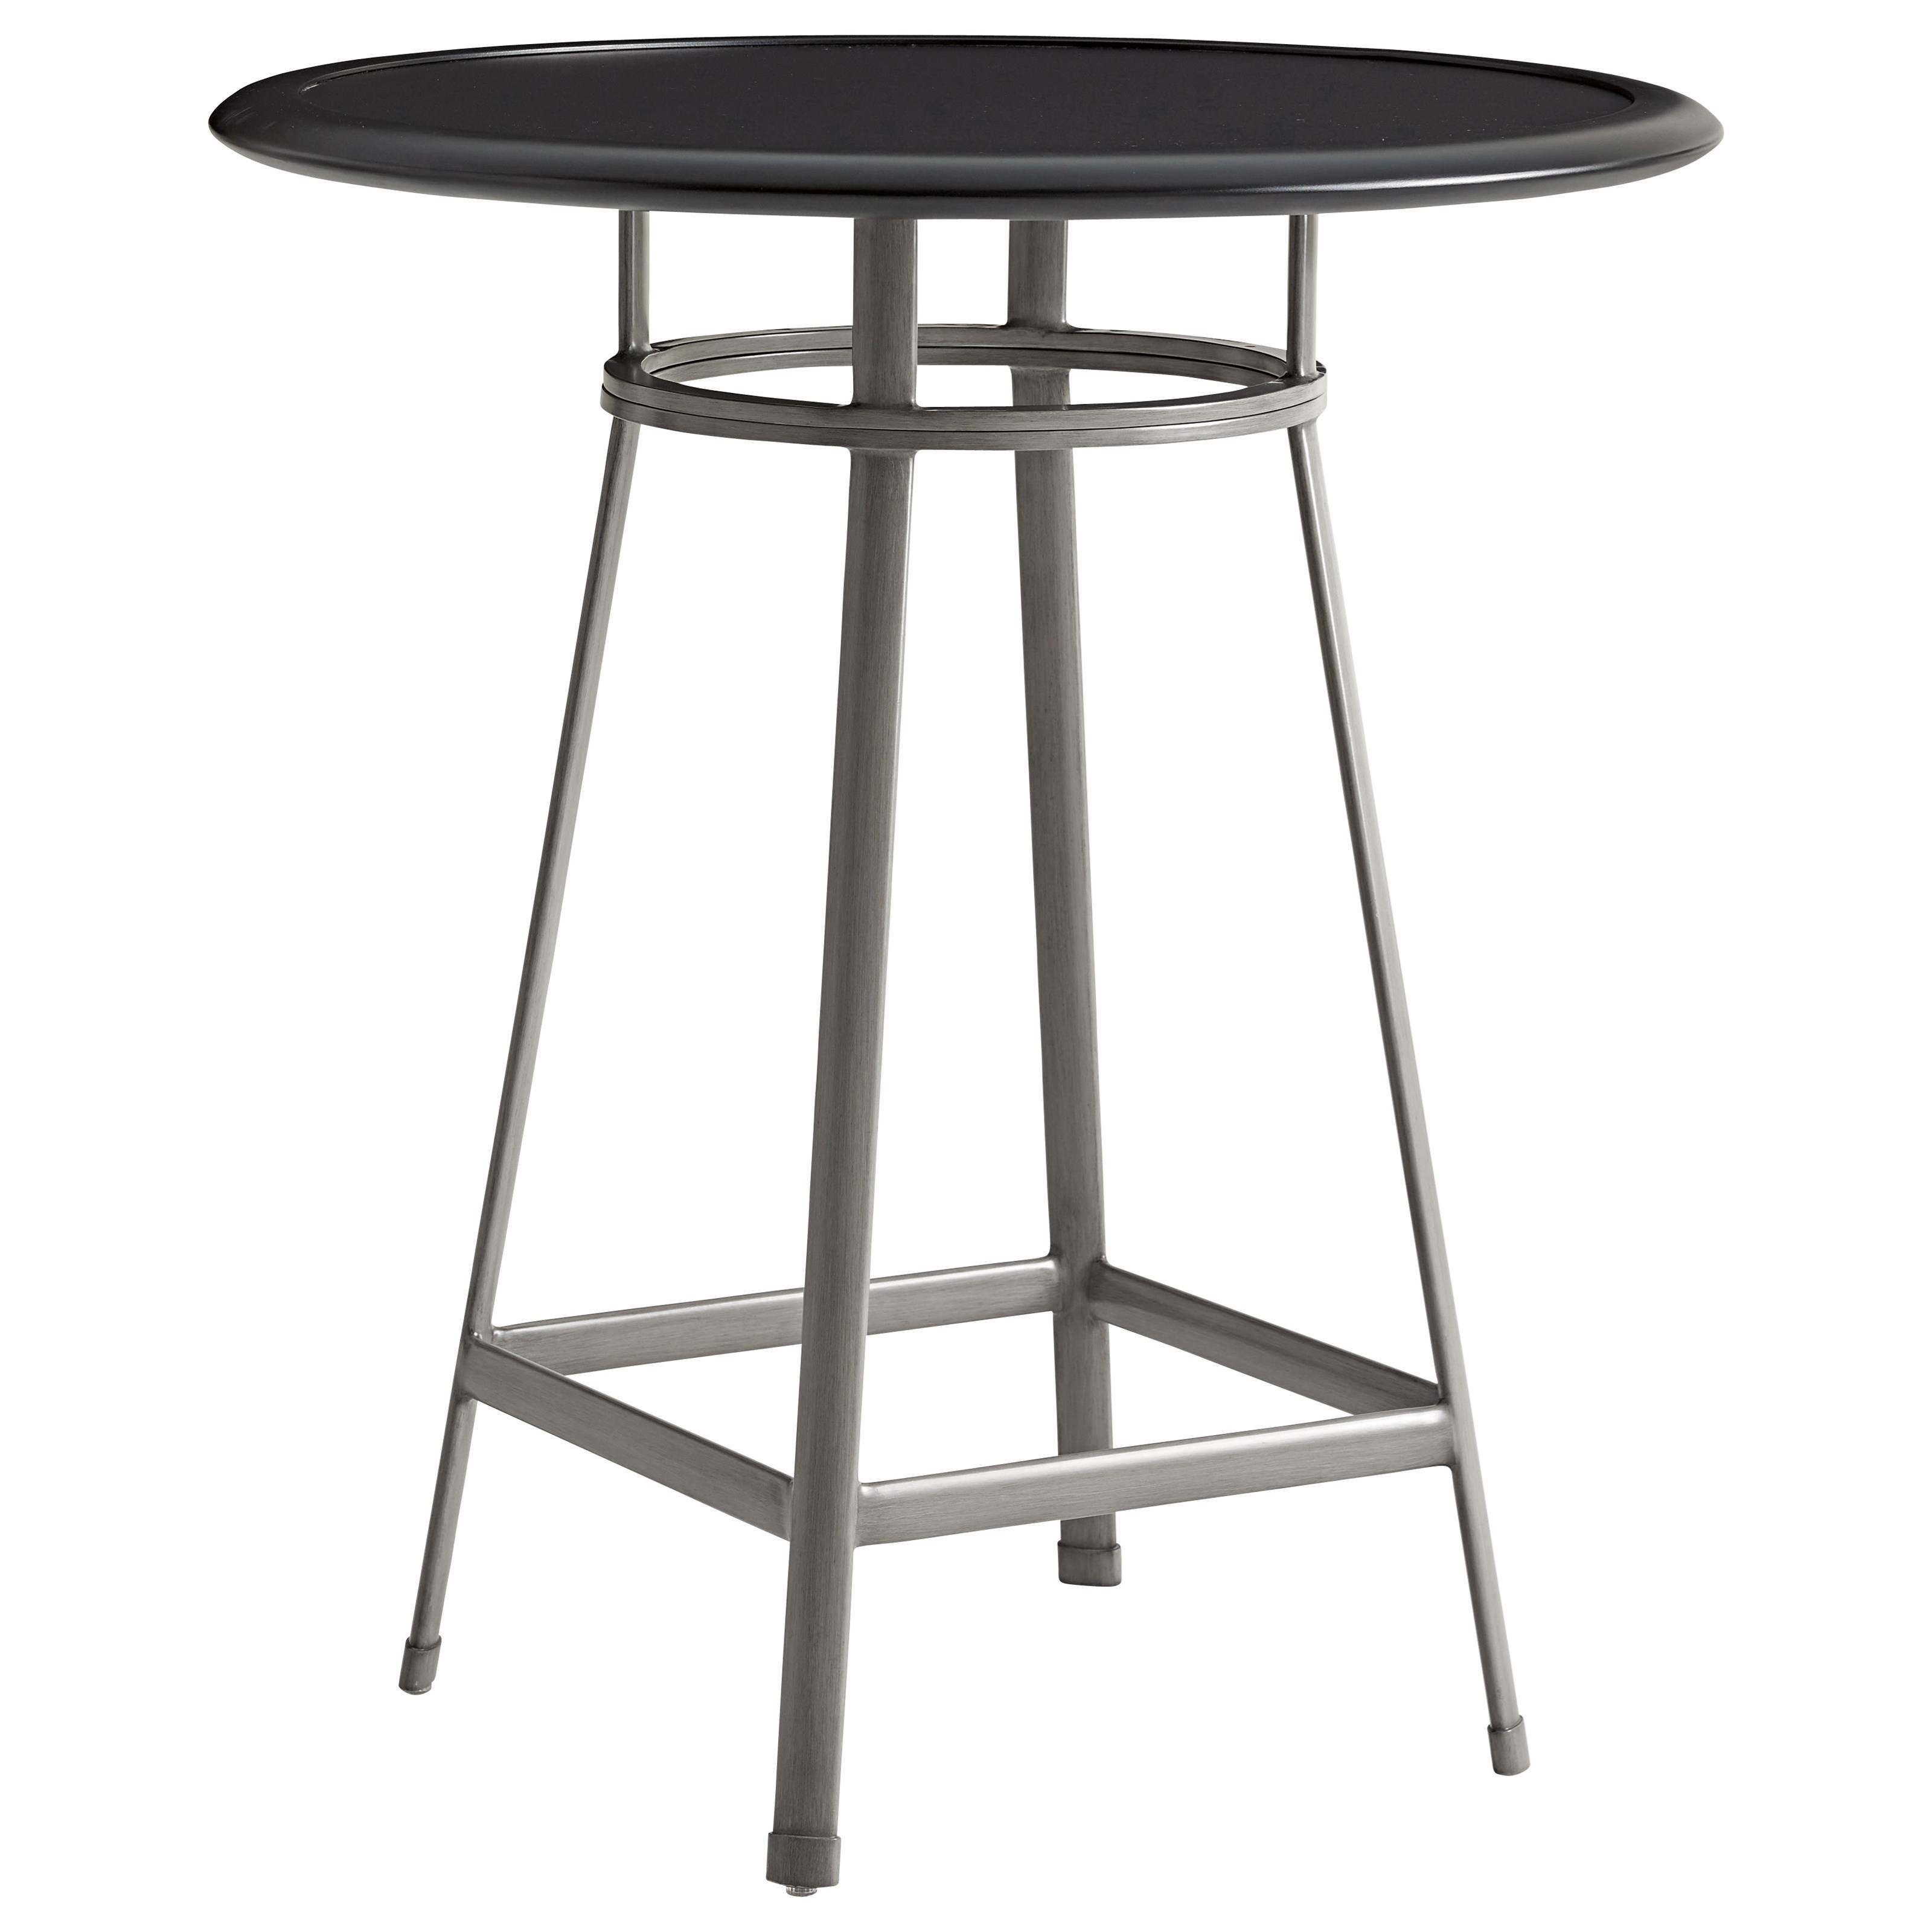 Del Mar High/low Bistro Table by Tommy Bahama Outdoor Living at Baer's Furniture